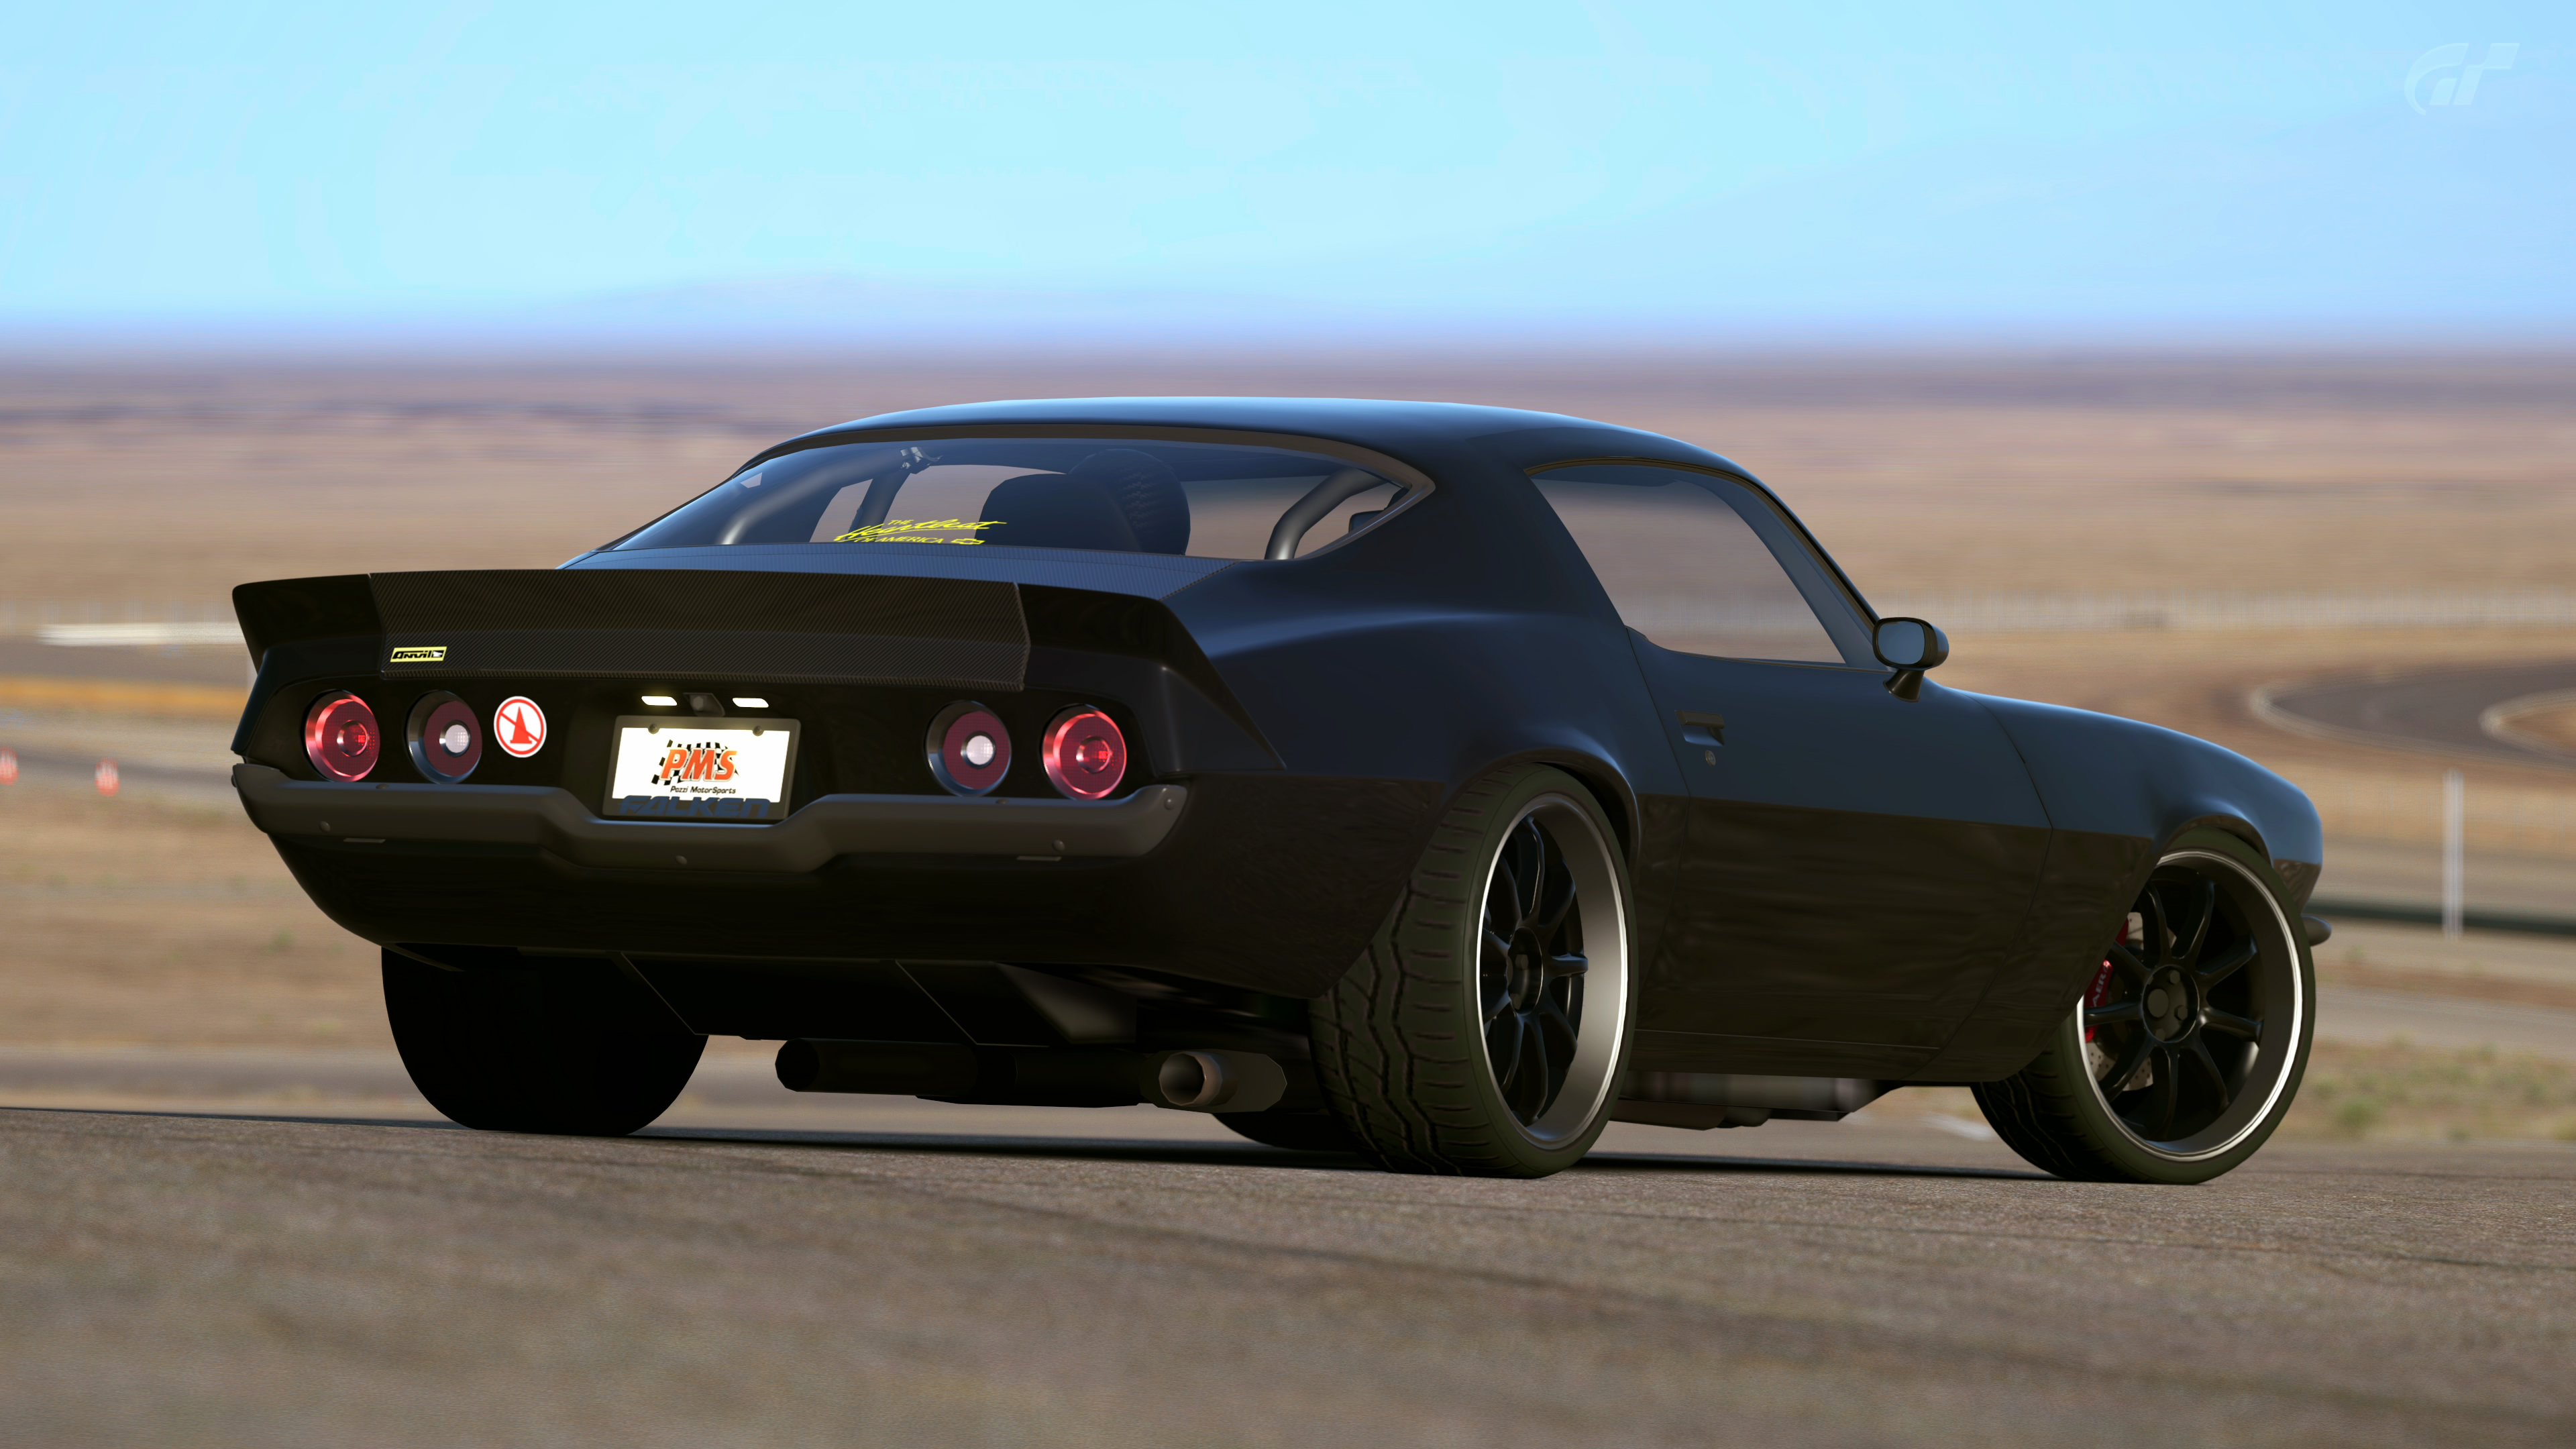 1971 Chevrolet Camaro RS Pro Touring GT6 by Vertualissimo on